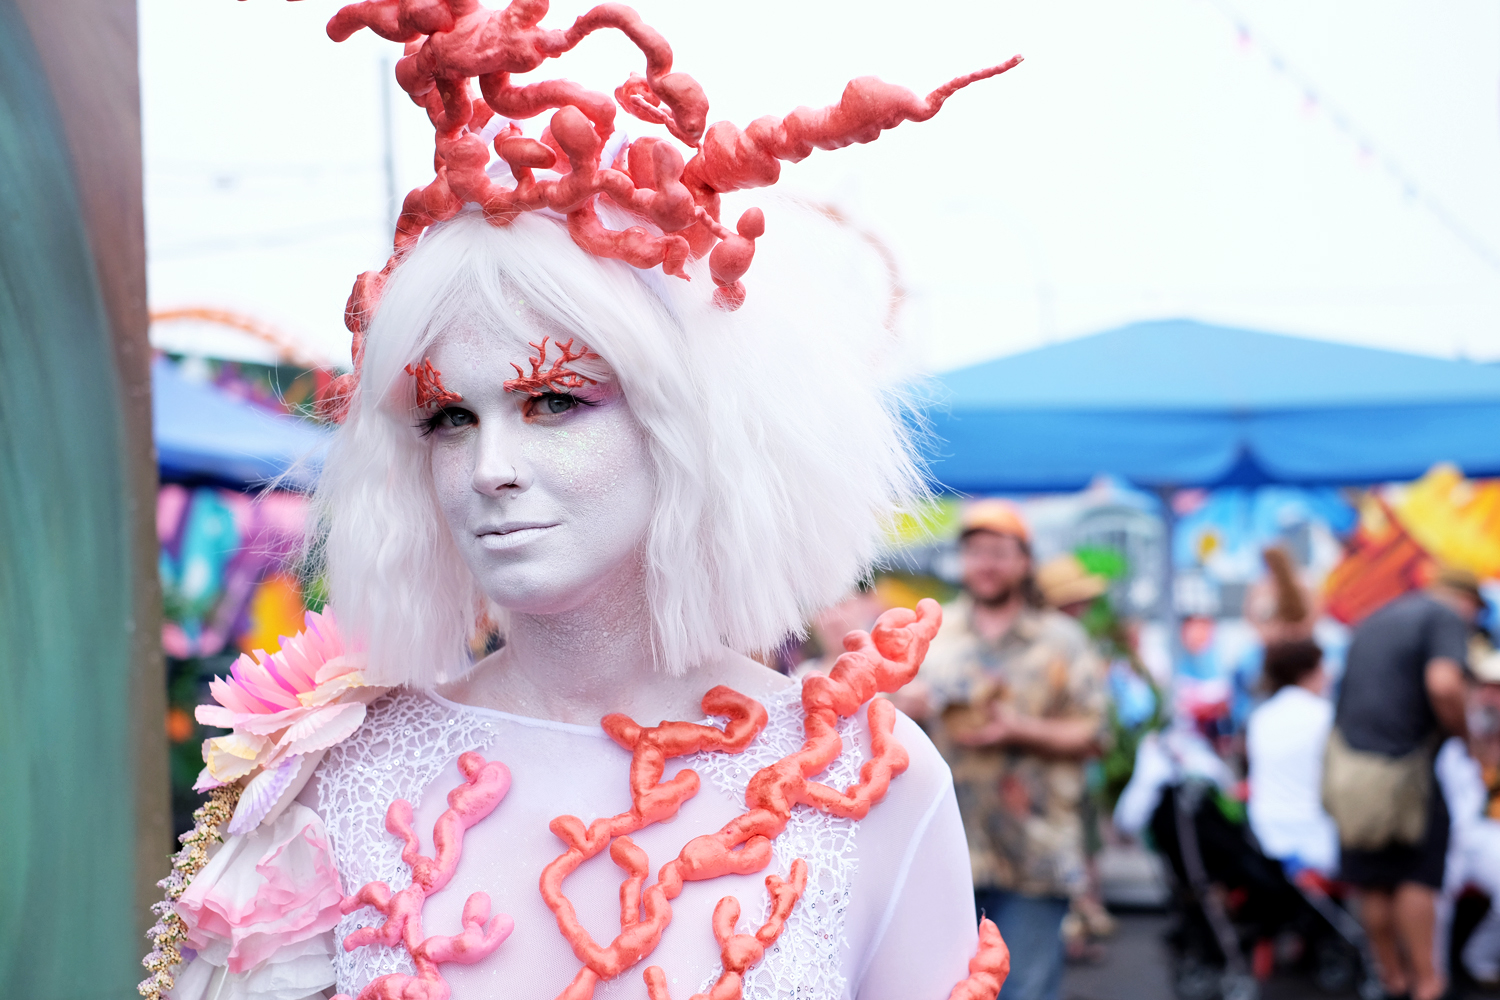 coney_island_mermaid_parade_nyc-event_photography_nyc-olivia_ramirez_photography_nyc-coney_island_new_york